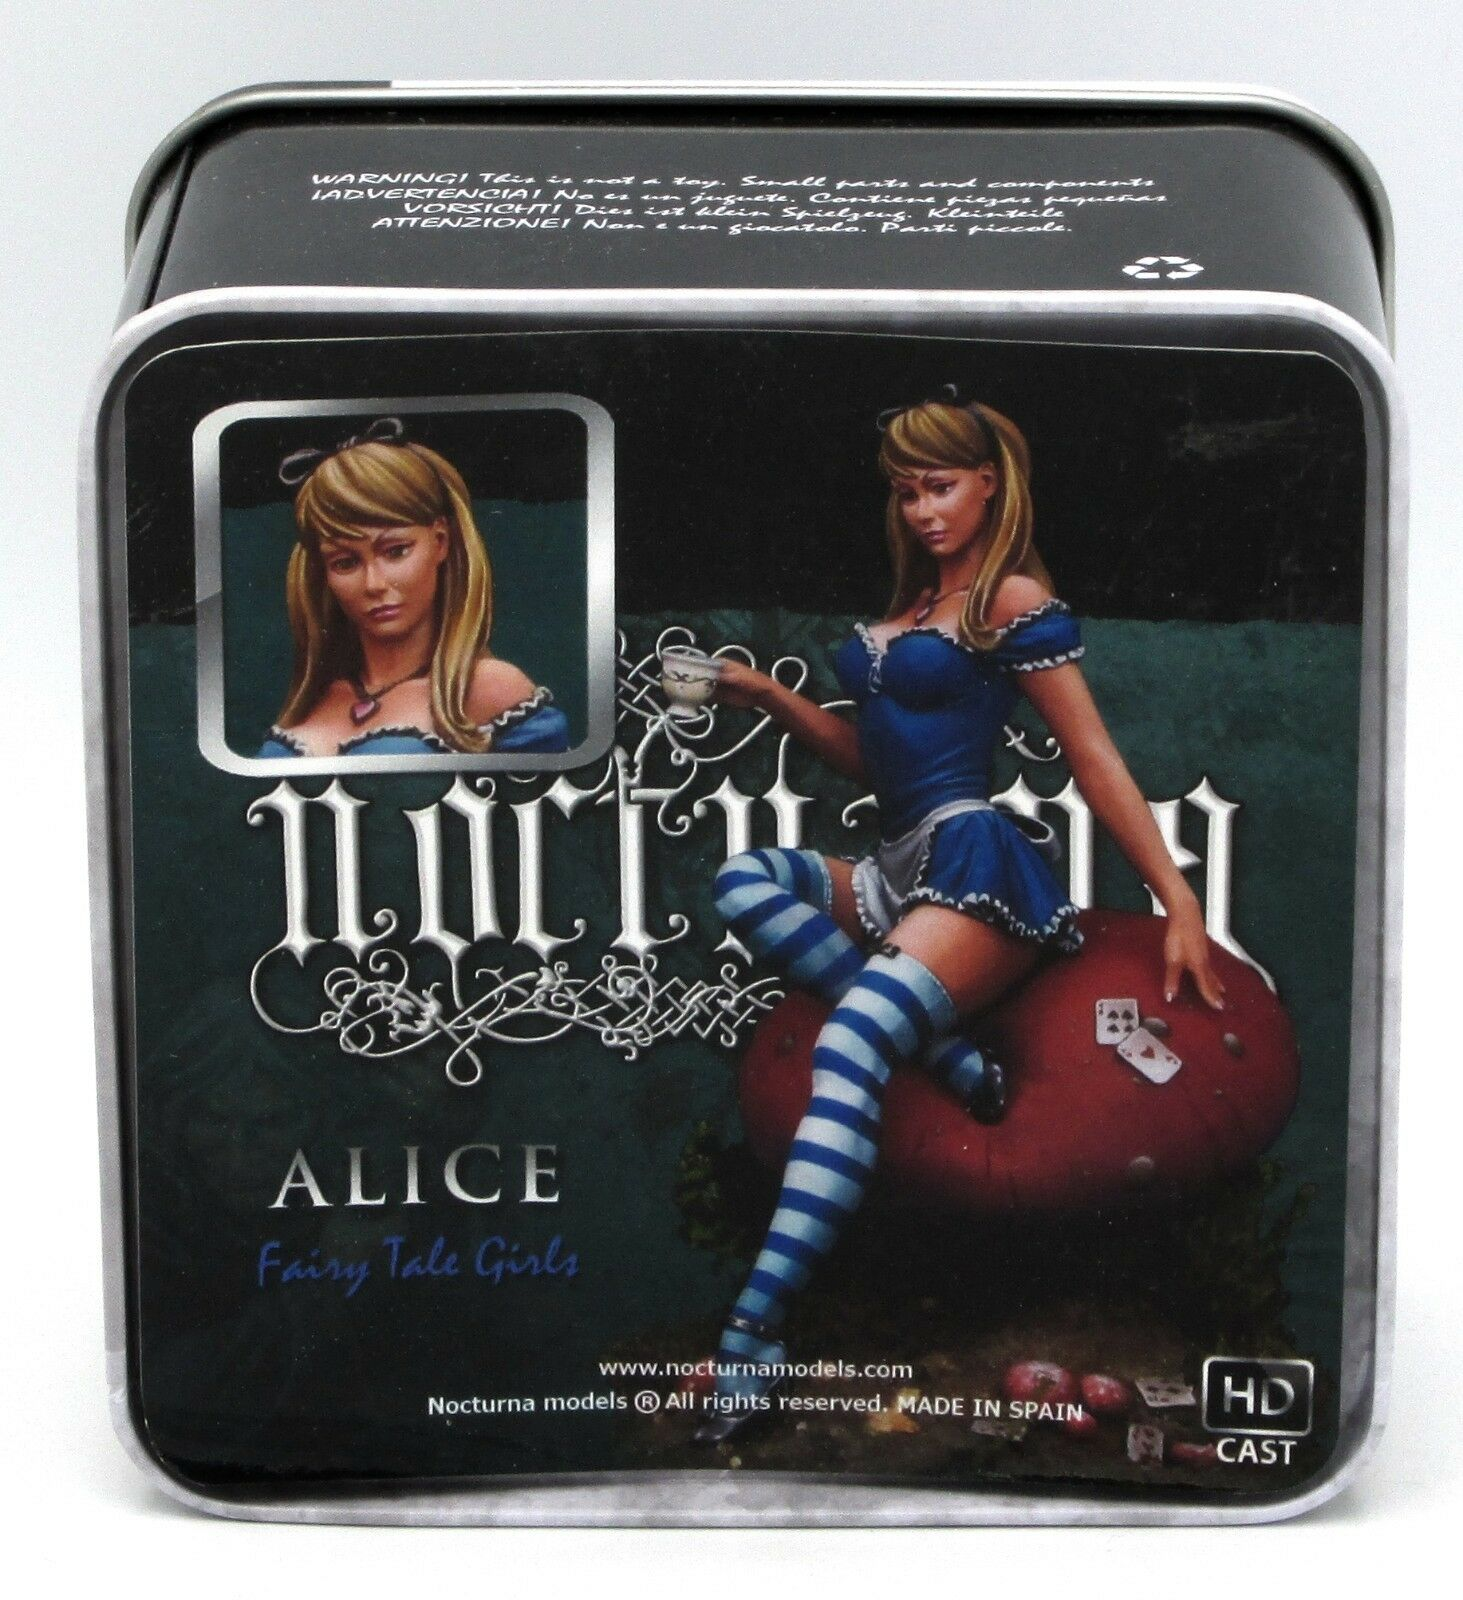 Nocturna FTG01 Alice (80mm) Fairy Tale Girls Female on Mushroom with Tea Cup NIB